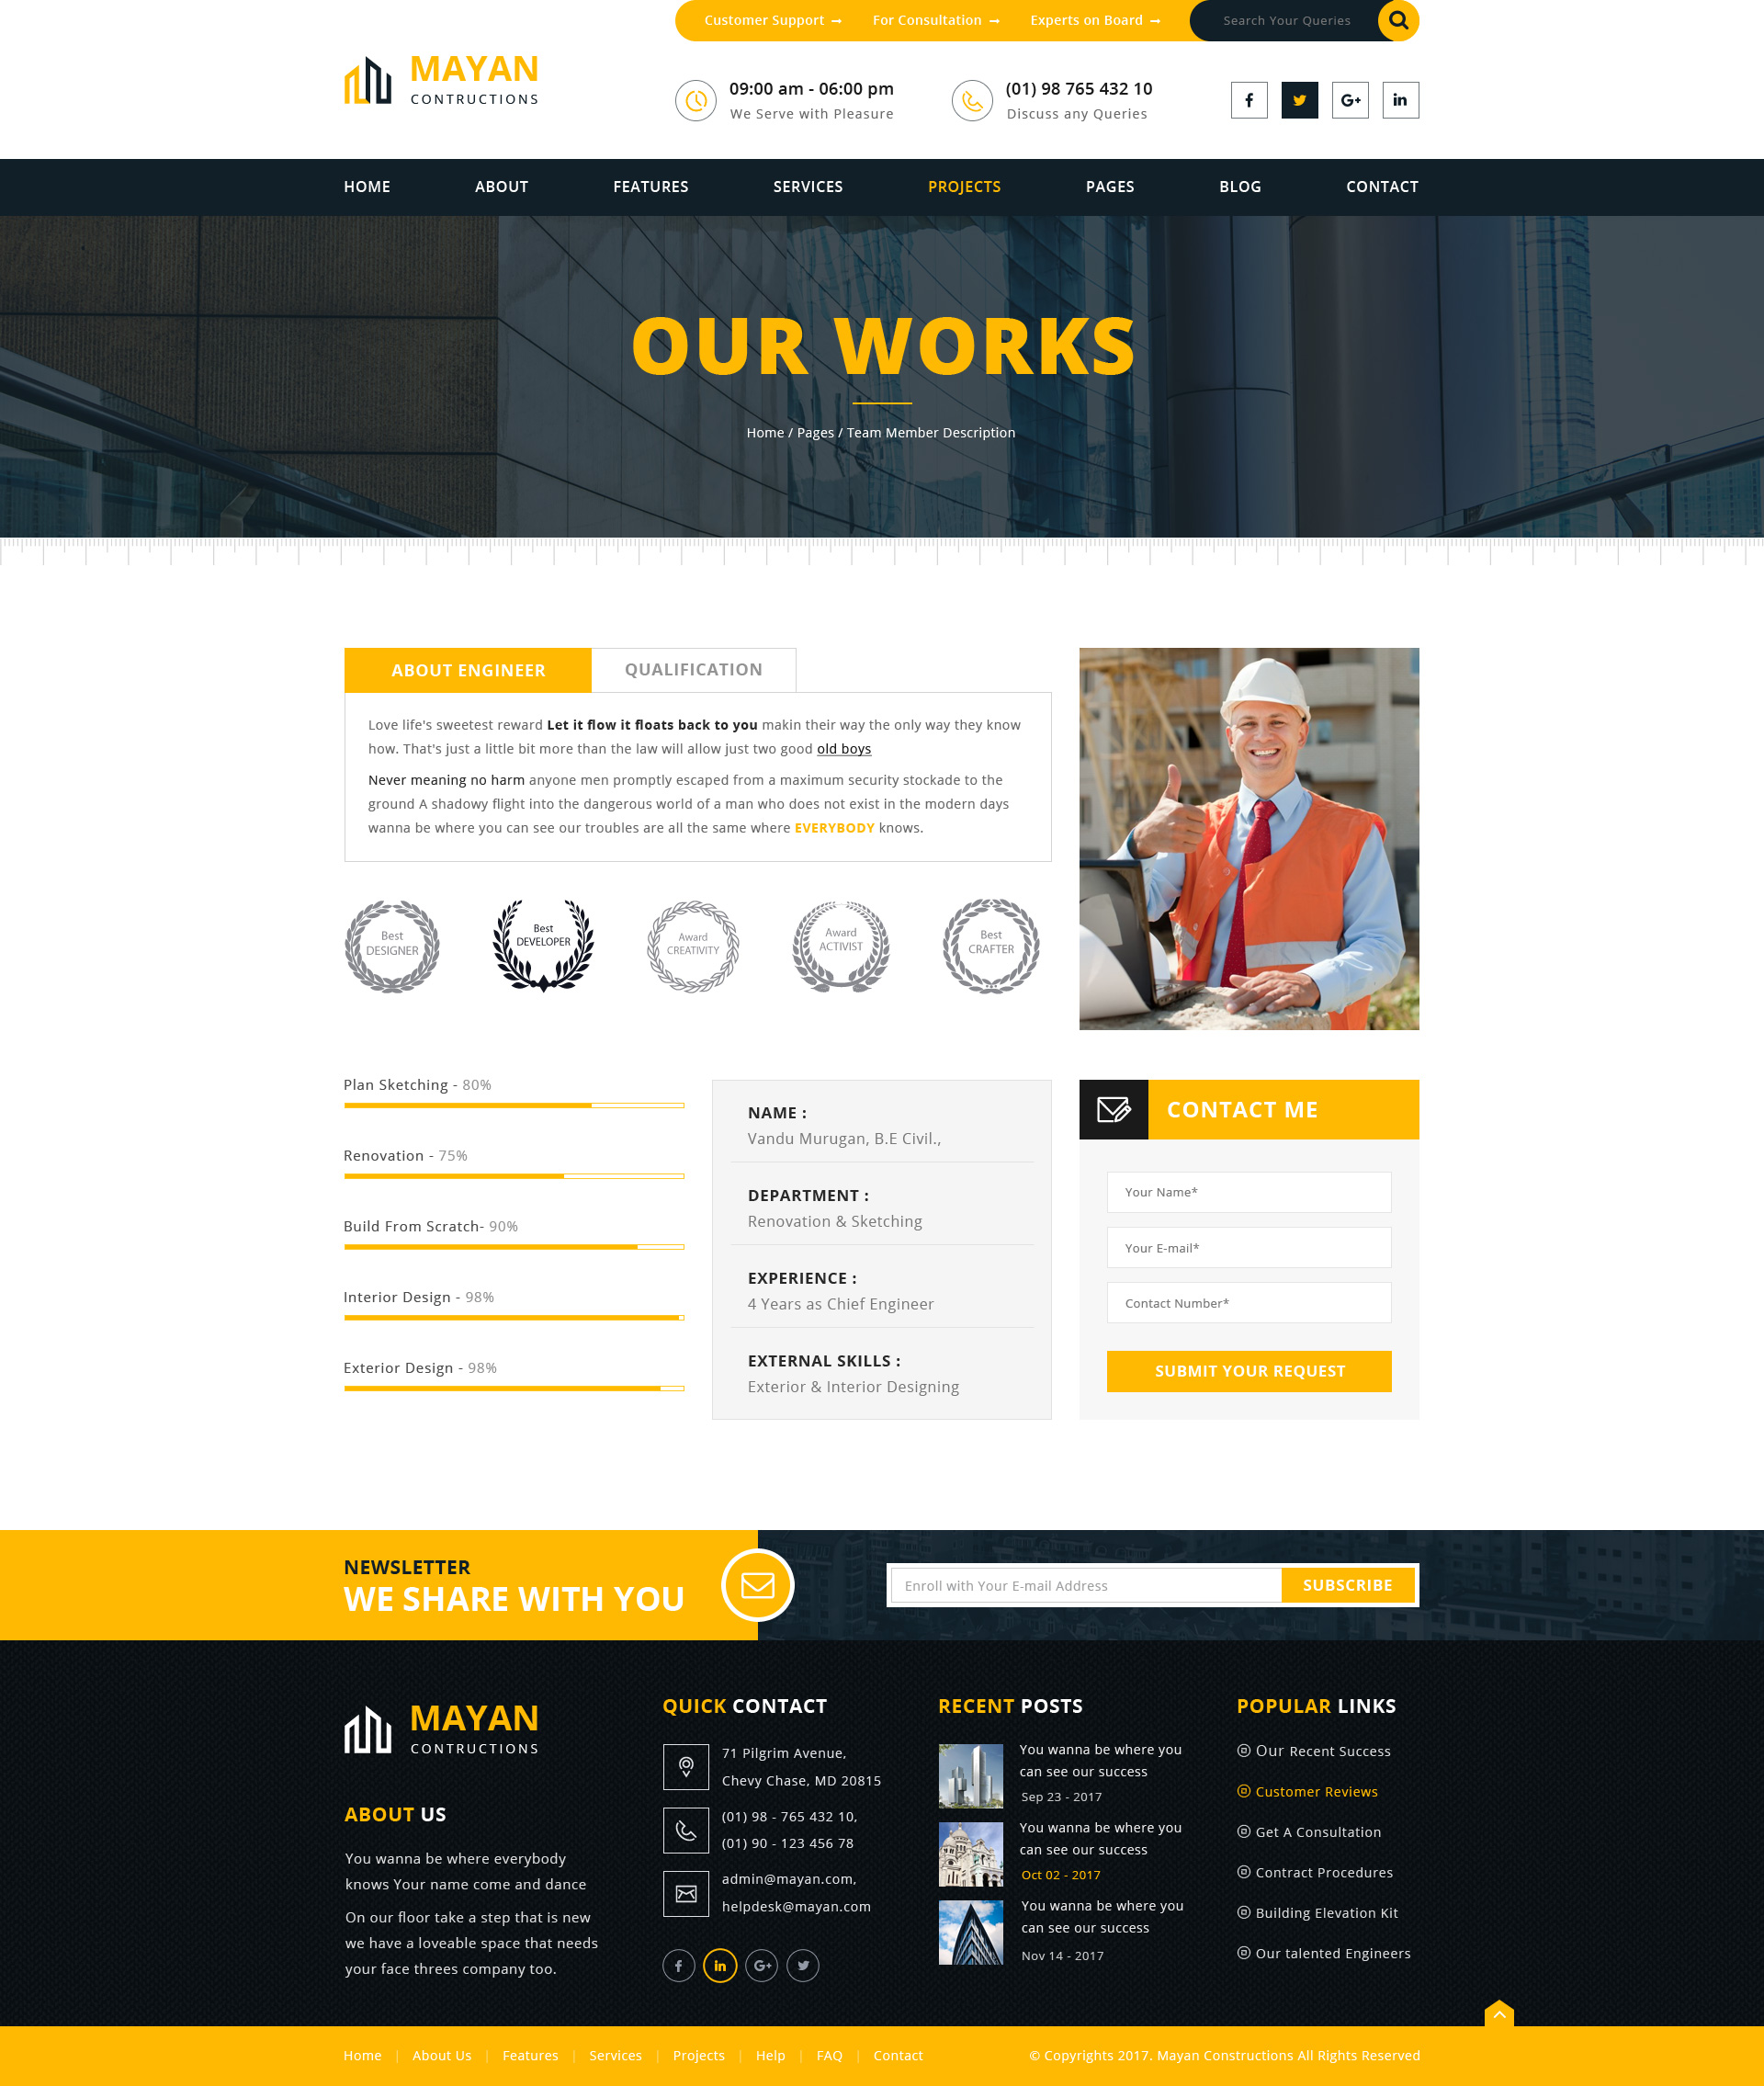 MAYAN Constructions - PSD web template by arrow_themes   ThemeForest